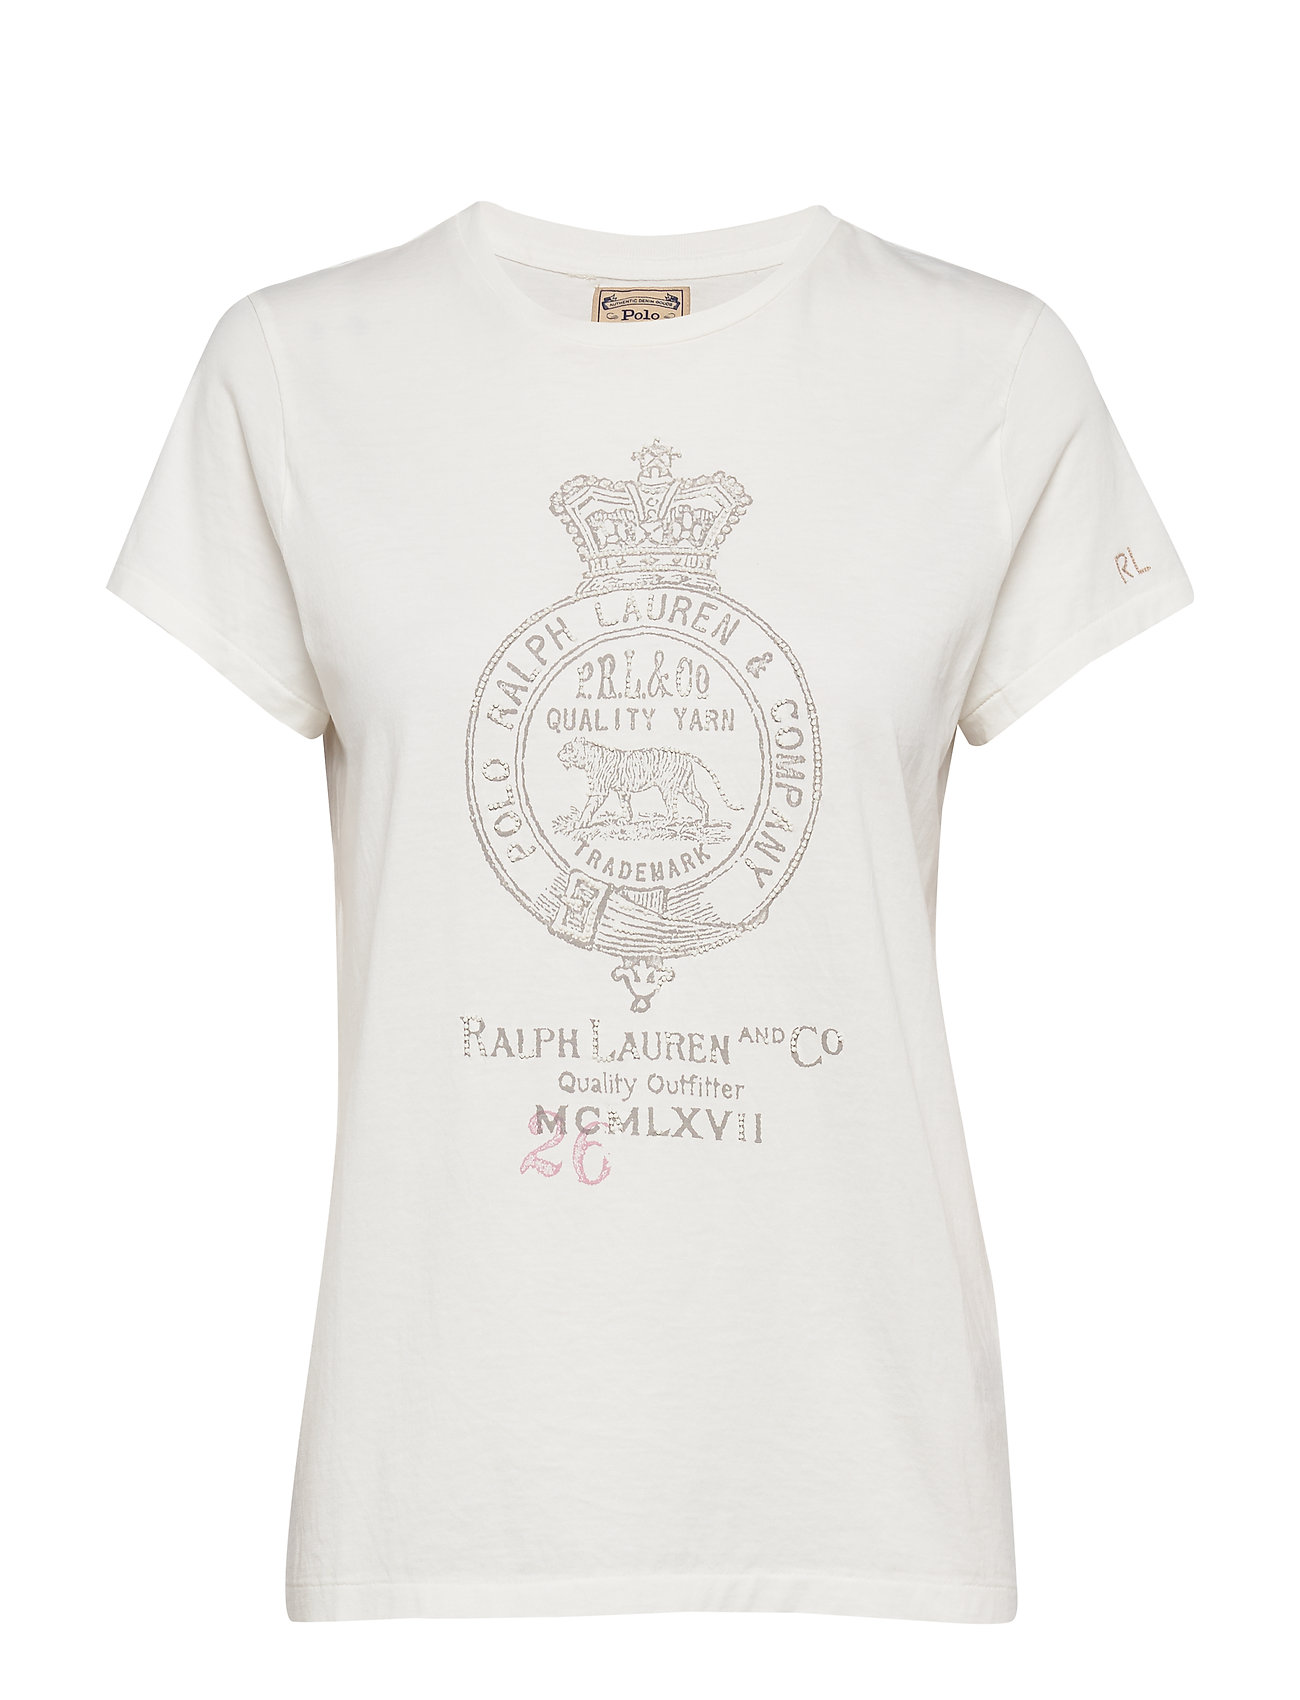 Polo Ralph Lauren Cotton Crest-Graphic Tee - NEVIS